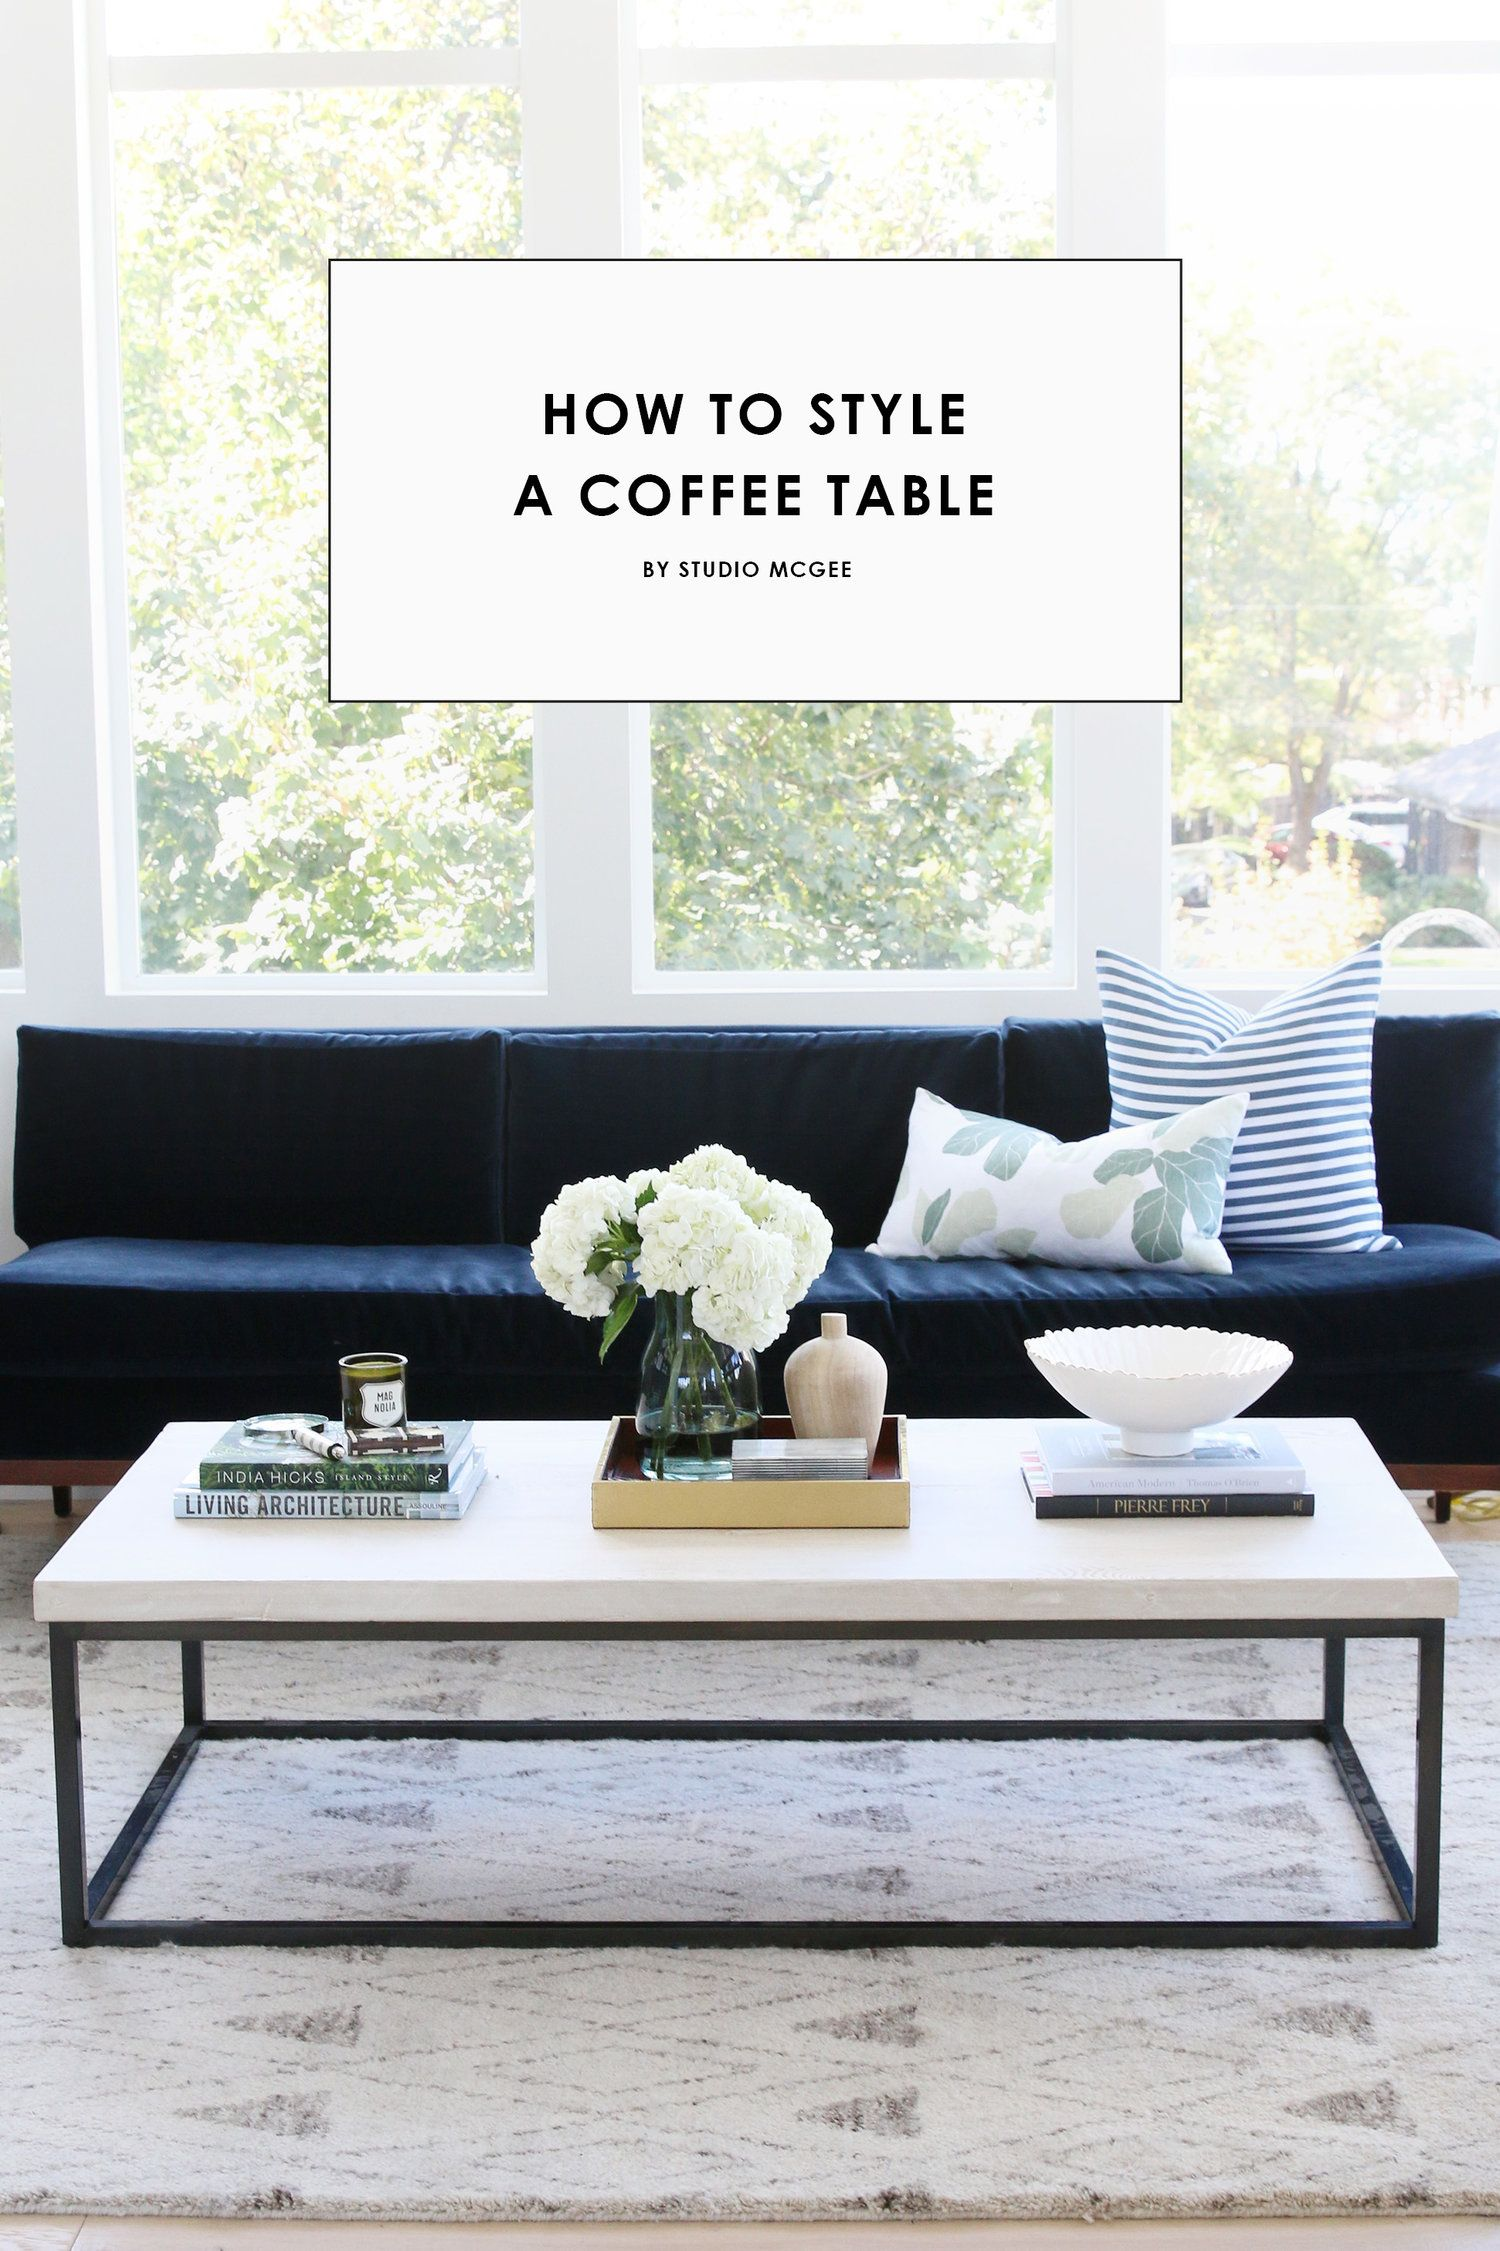 Glass coffee table in living room coffee table styling shopping guide  houseudesign  pinterest